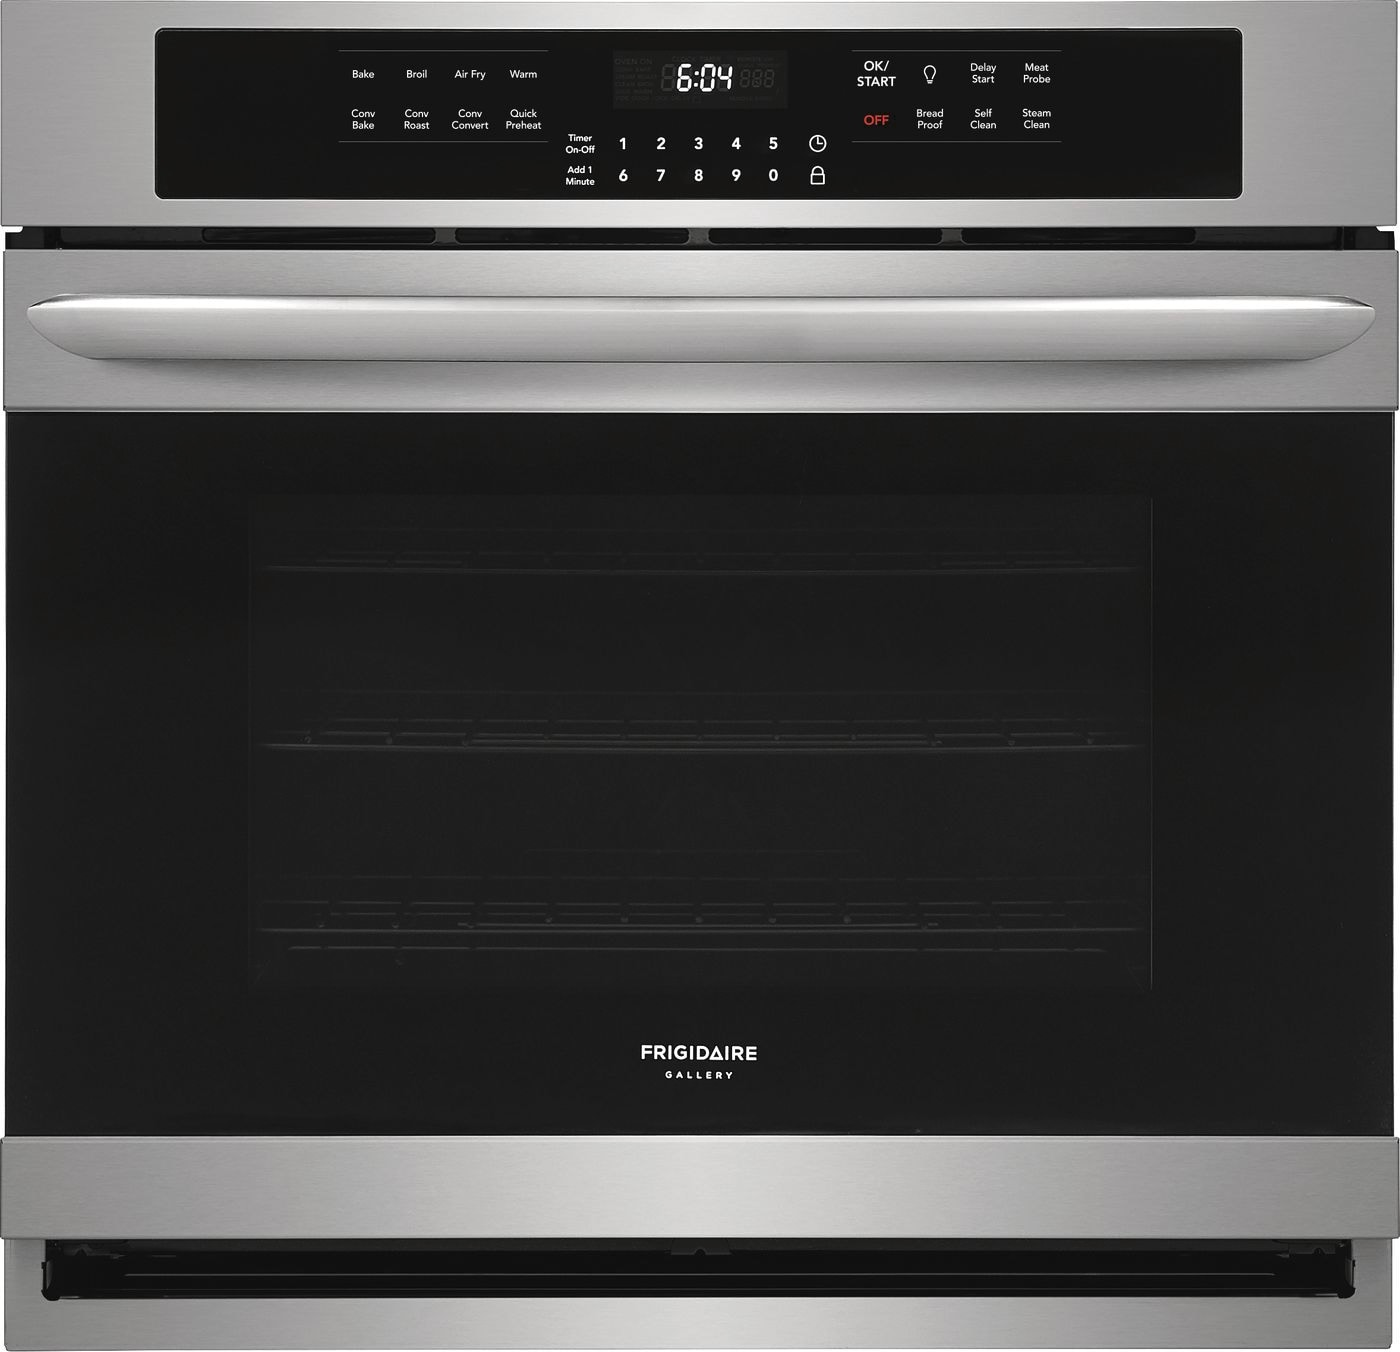 "Frigidaire Gallery 30"" Single Electric Wall Oven with Air Fry"